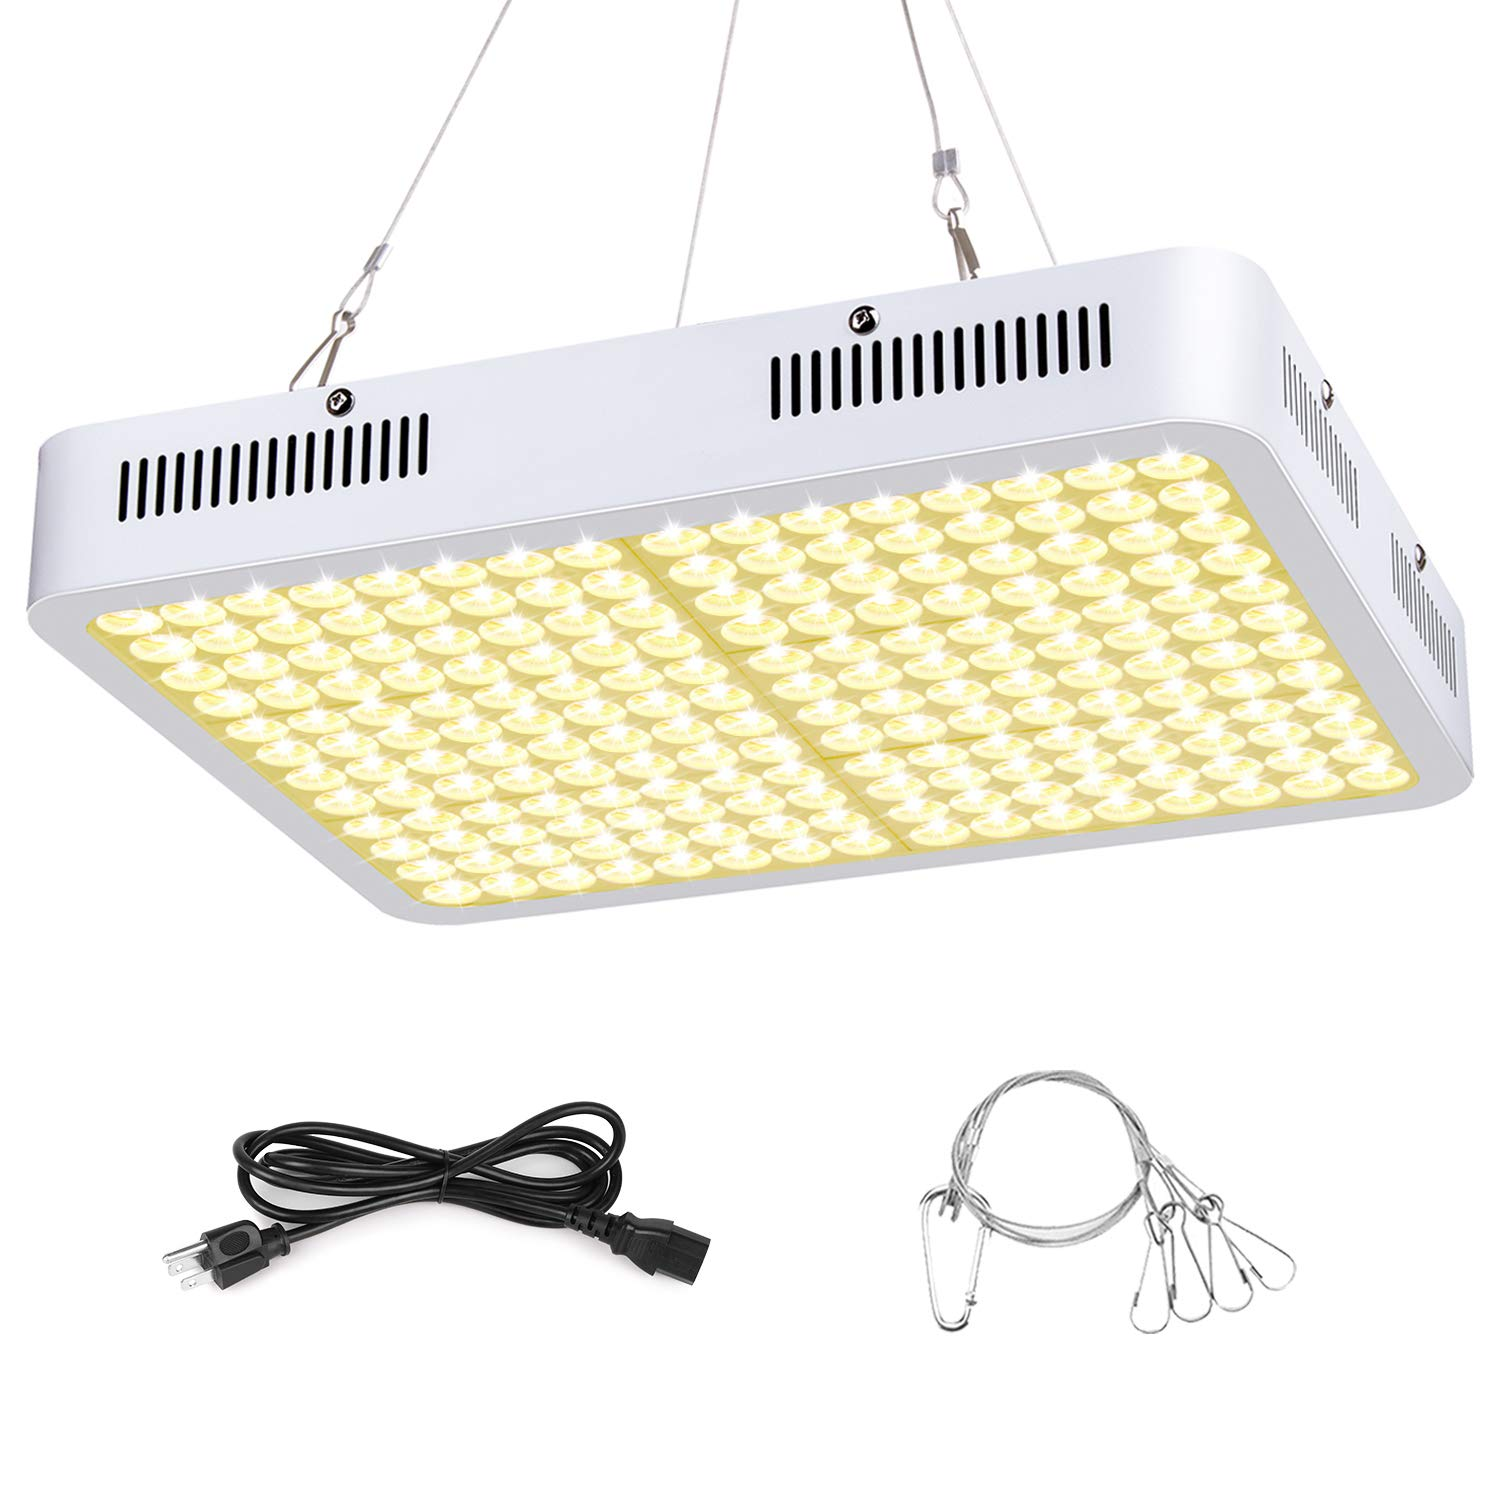 LED Grow Light, Roleadro 1500W Grow Light 3500k Sunlike Plant Light Full Spectrum Dual-Chip with ON/Off Switch and Daisy Chain for Indoor Plants for Seedling,Vegetative,Succulent,Micro Greens,Clones by Roleadro